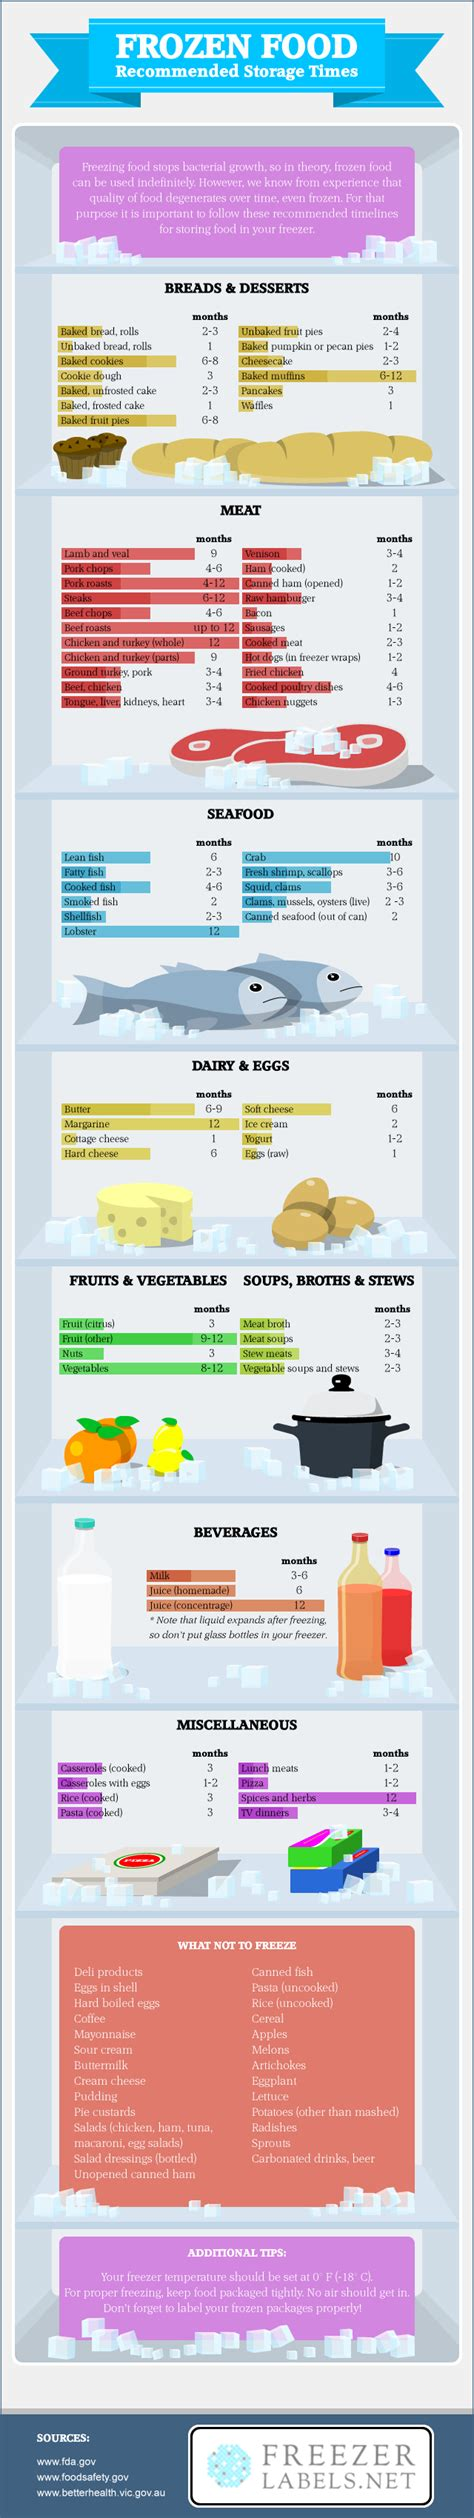 Freezer Frozen Food food freezing tips how can you store meals in your